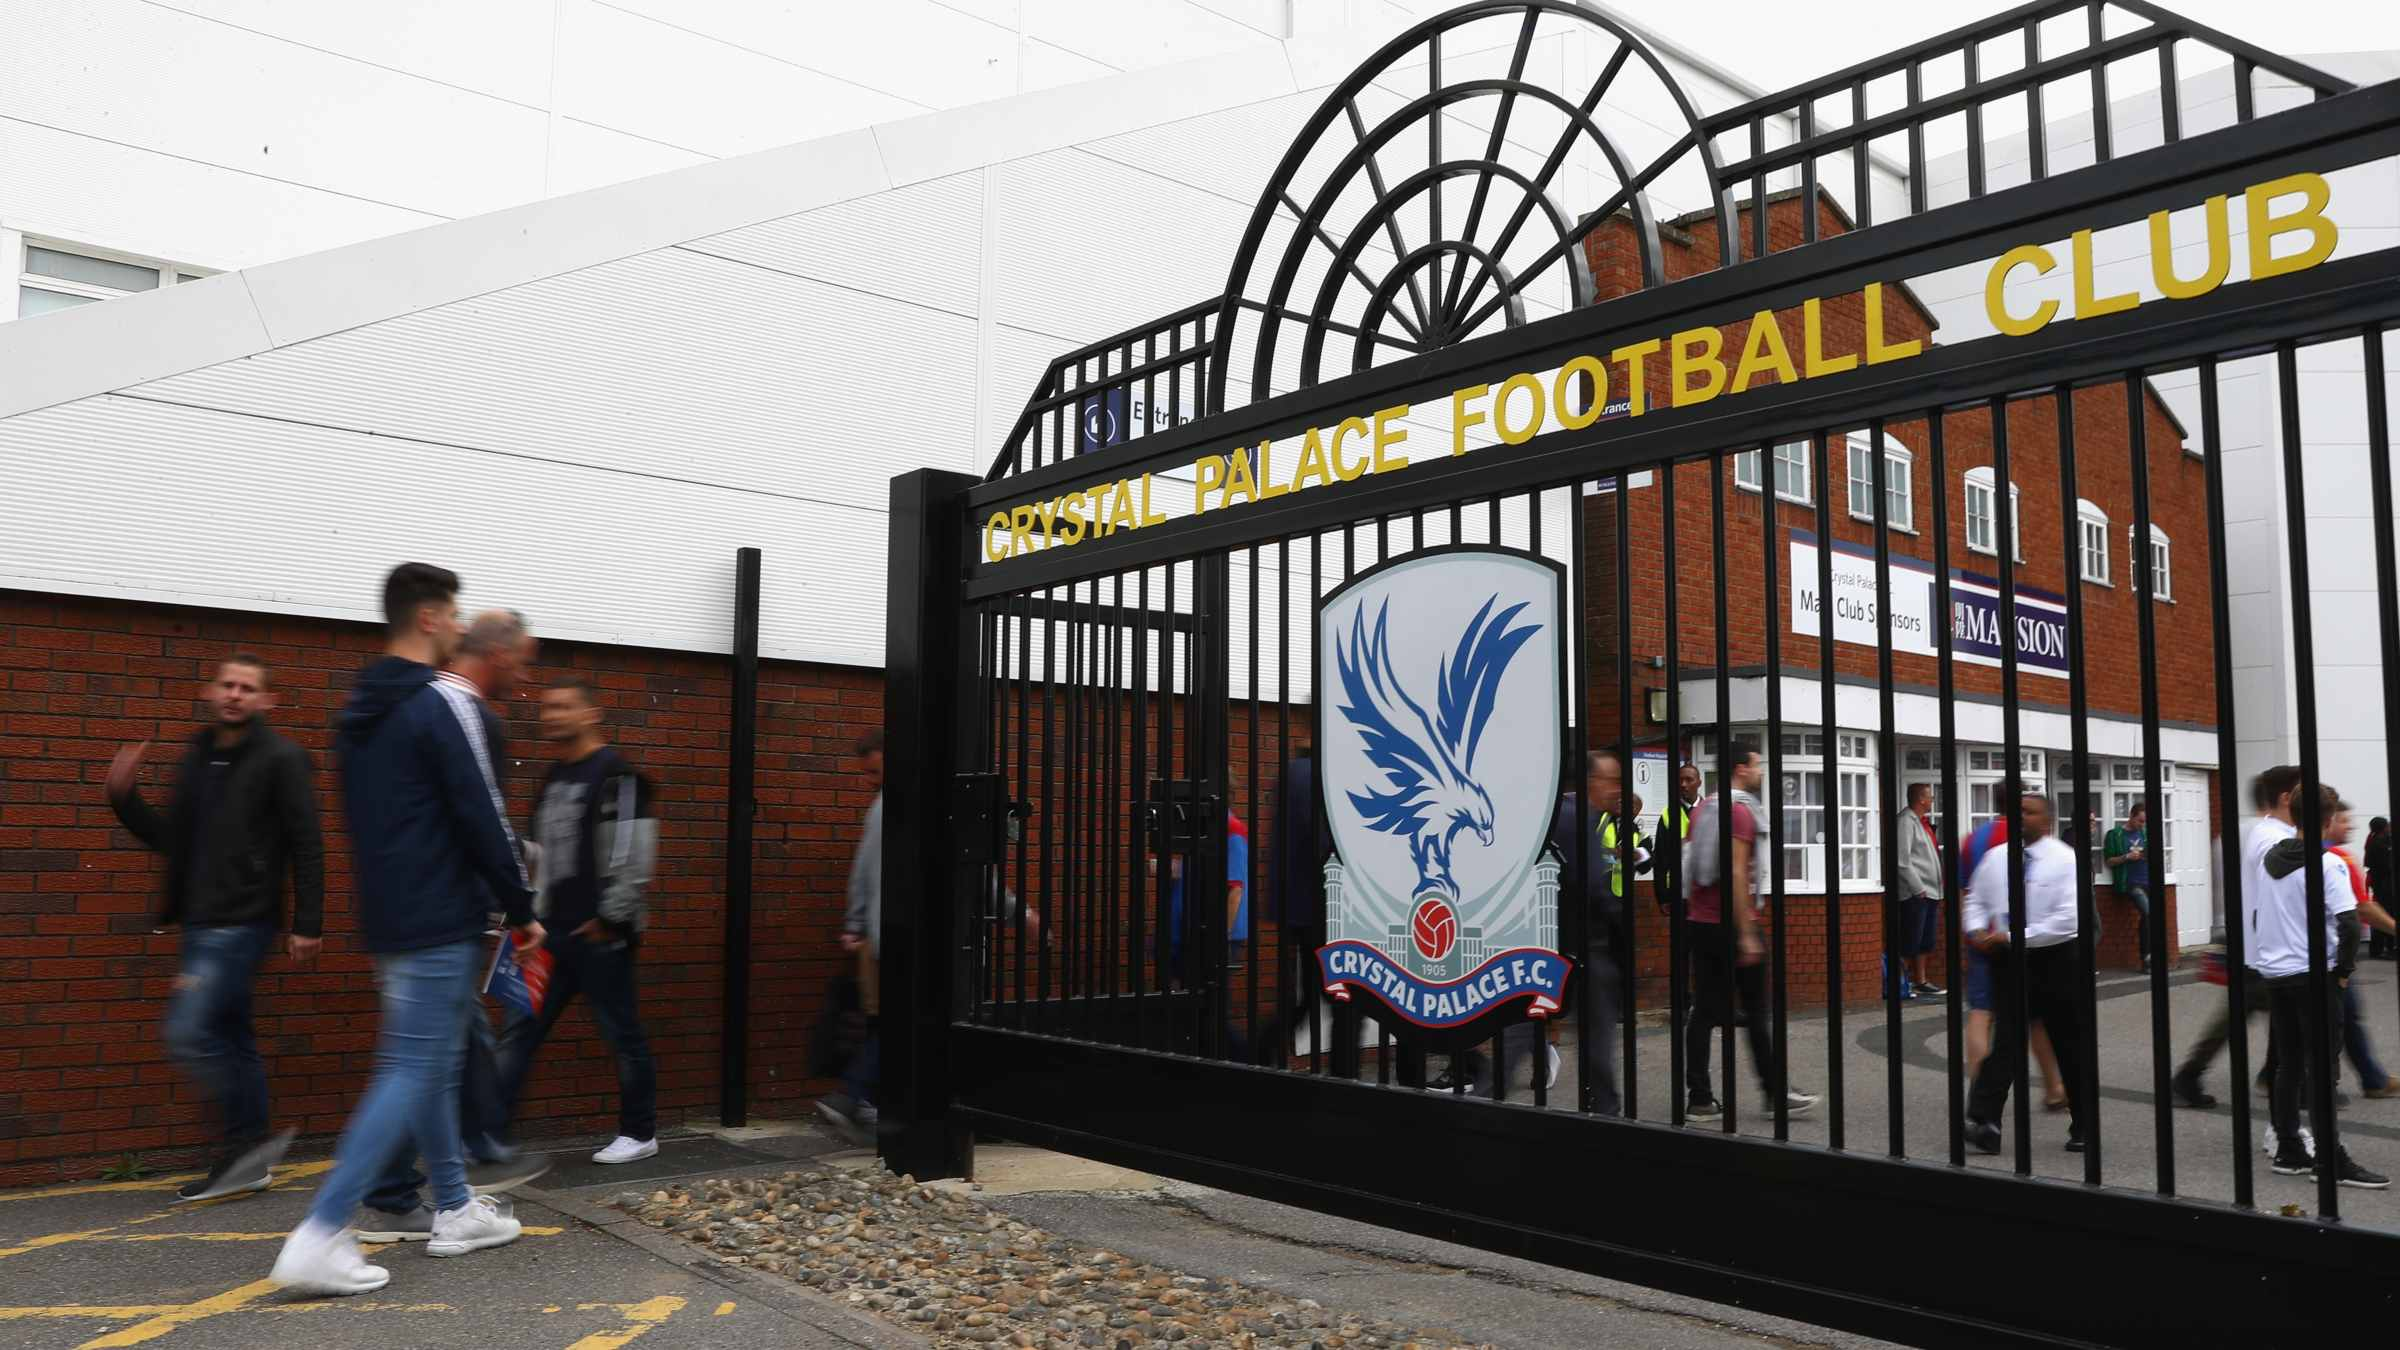 Supporter information for Palace clash